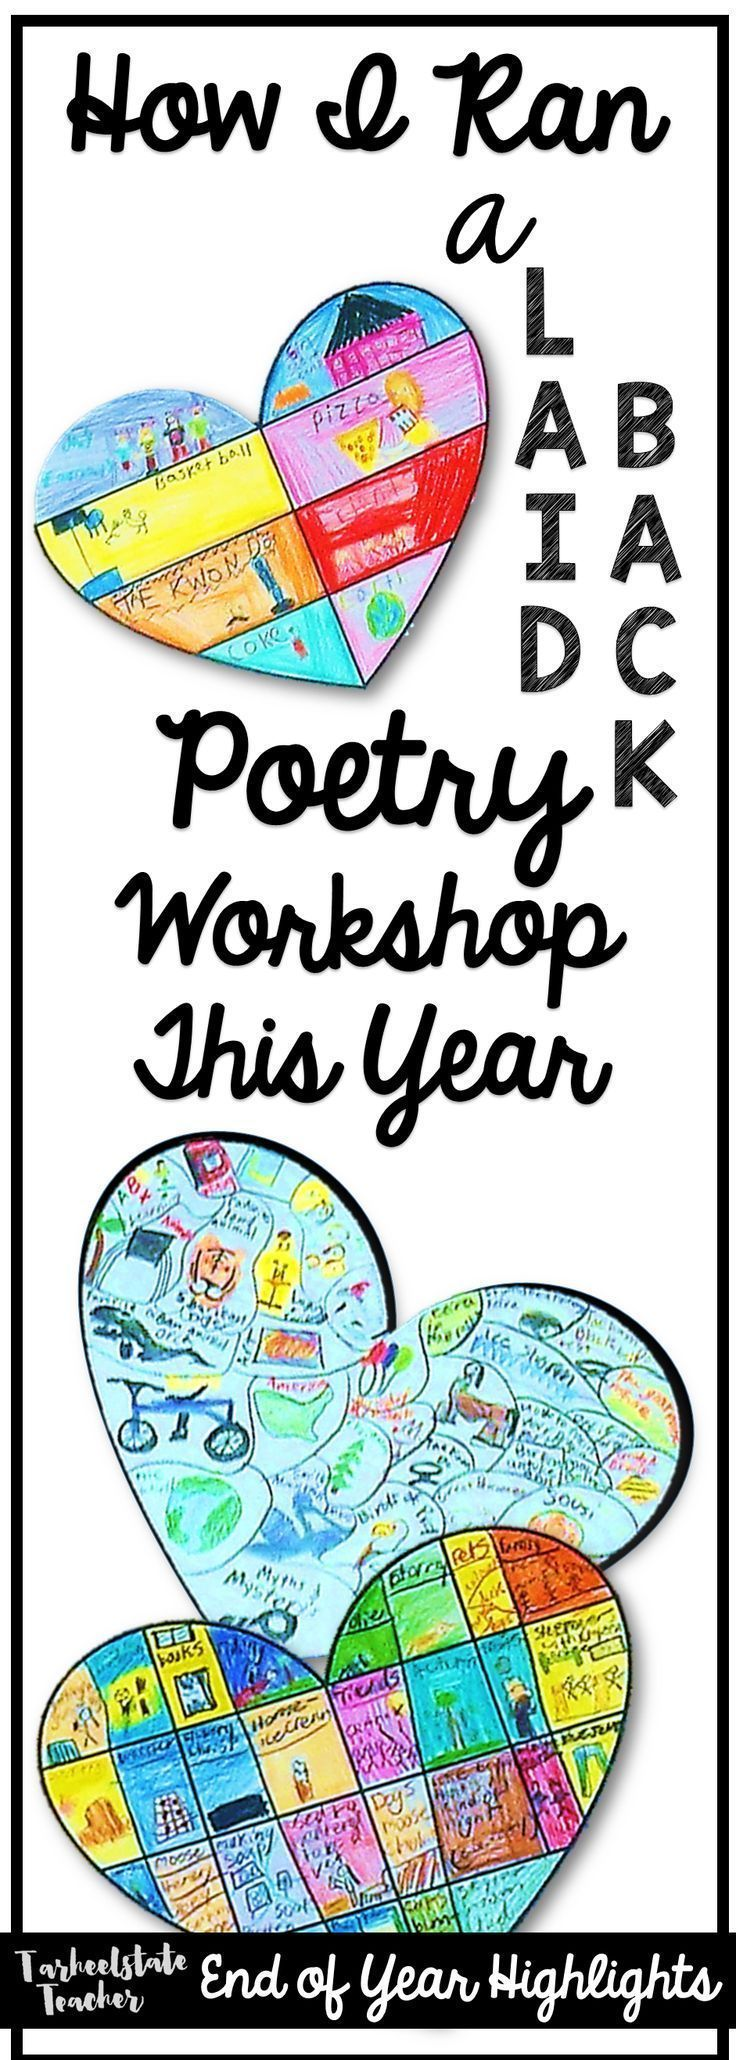 Poetry Workshop In 4th Grades, 5th Grades: How To Run A Laid Back,